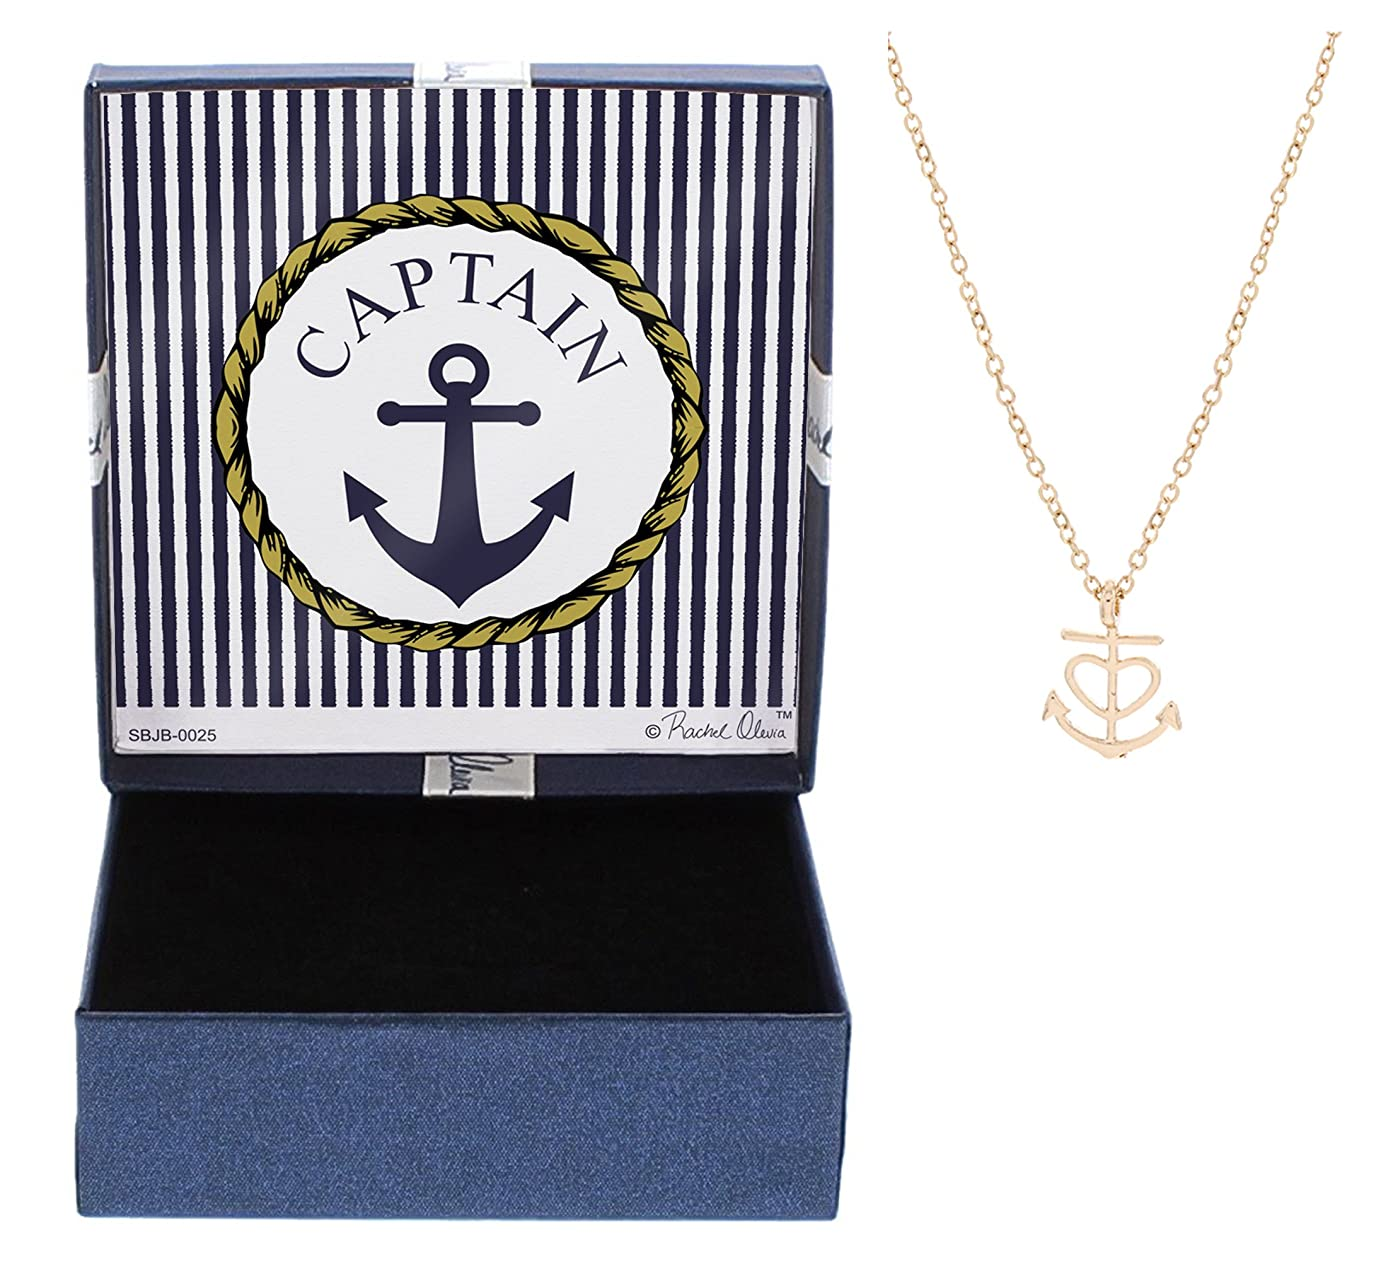 Nautical Jewelry Captain Necklace Cable Chain Anchor with Heart Necklace Jewelry Box jfh4627433